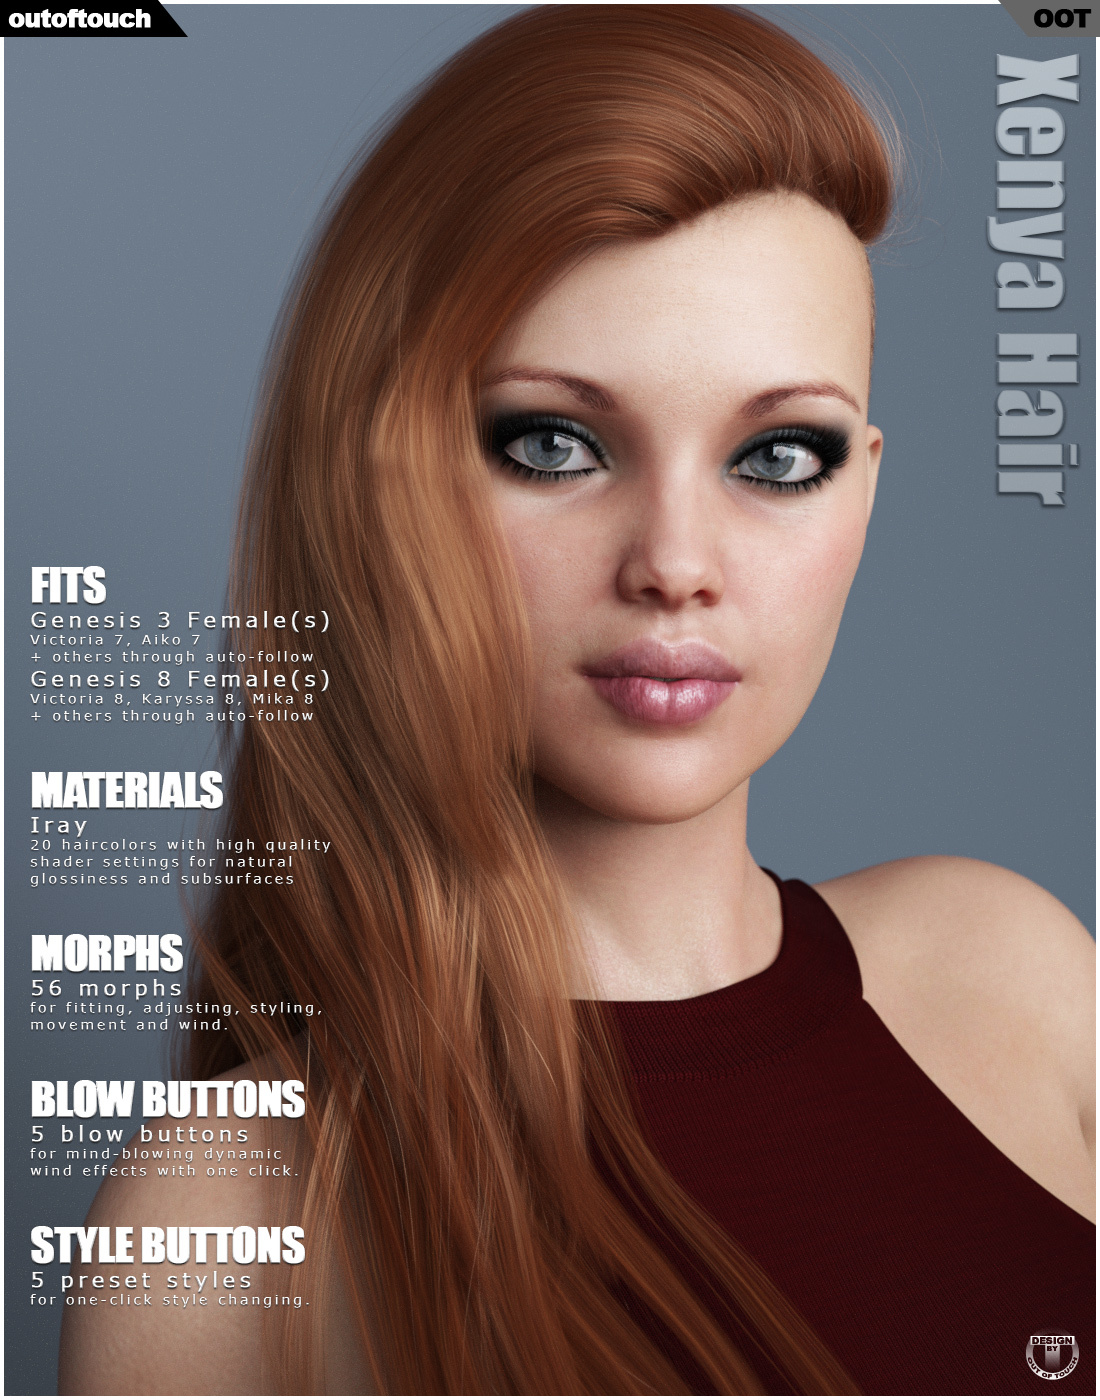 Xenya Hair for Genesis 3 and 8 Females by outoftouch